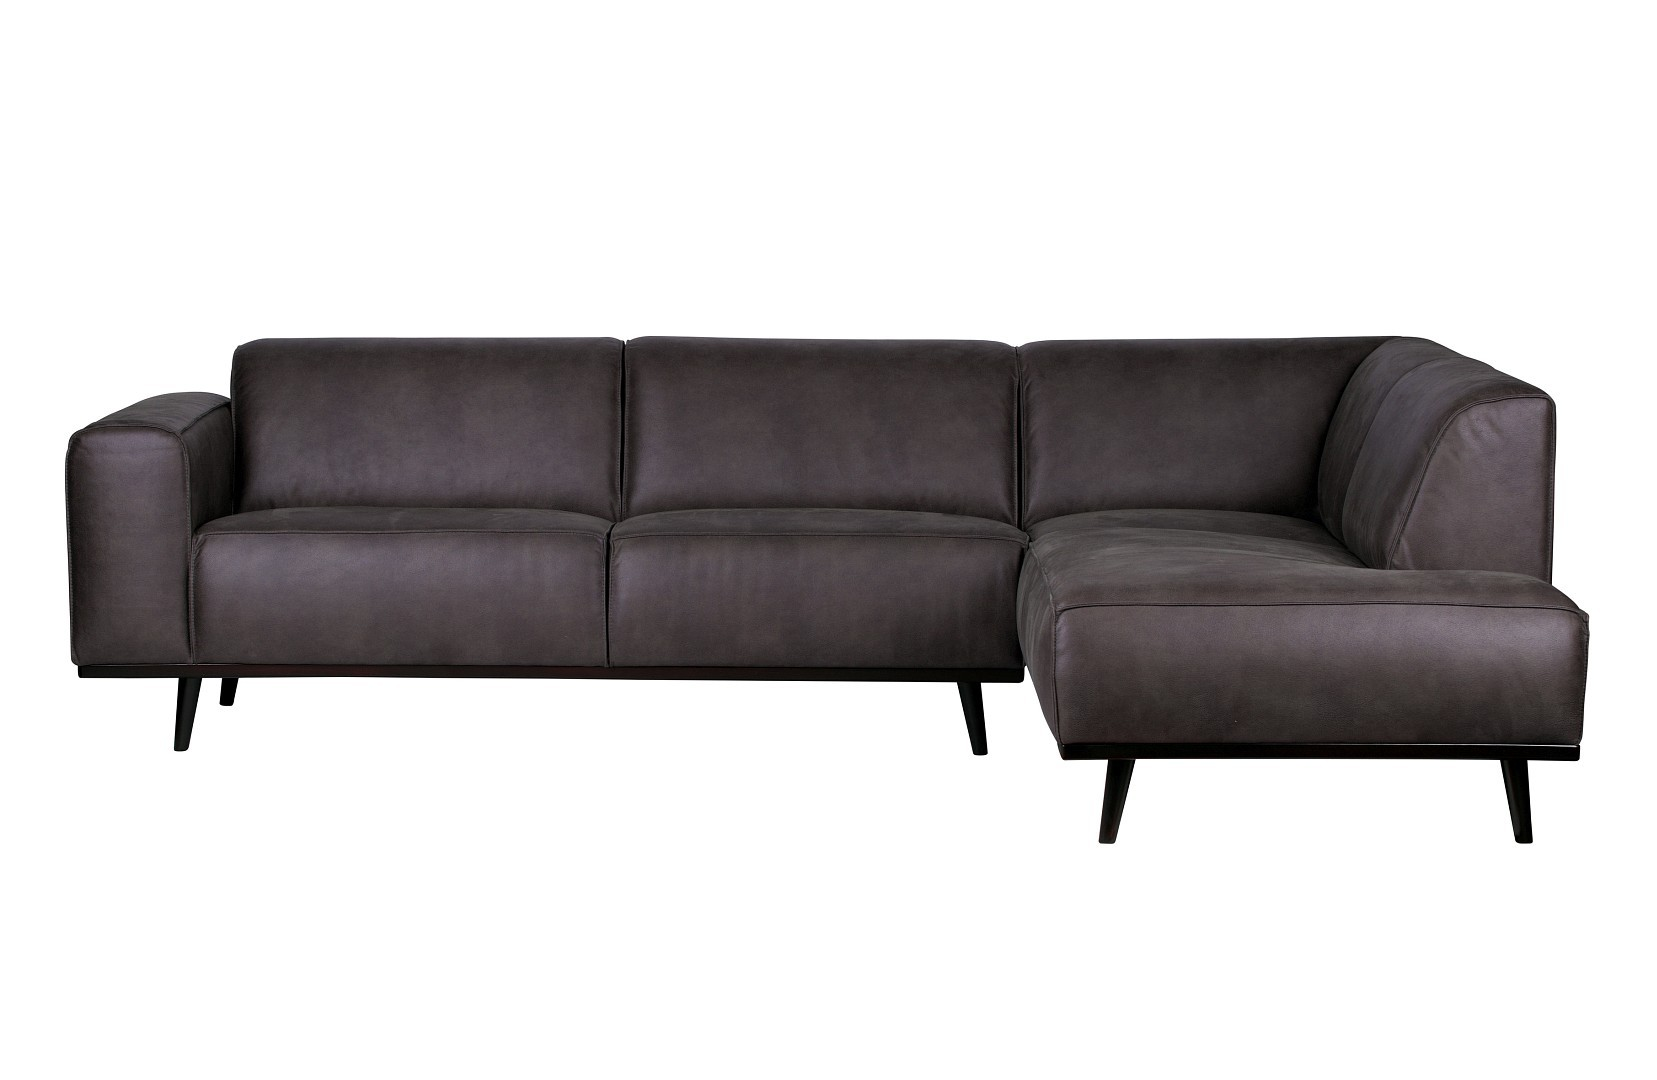 4er Cinema Sessel Ecksofa Recycle Leder Statement Dunkelgrau Rechts Oder Links 274 X 210